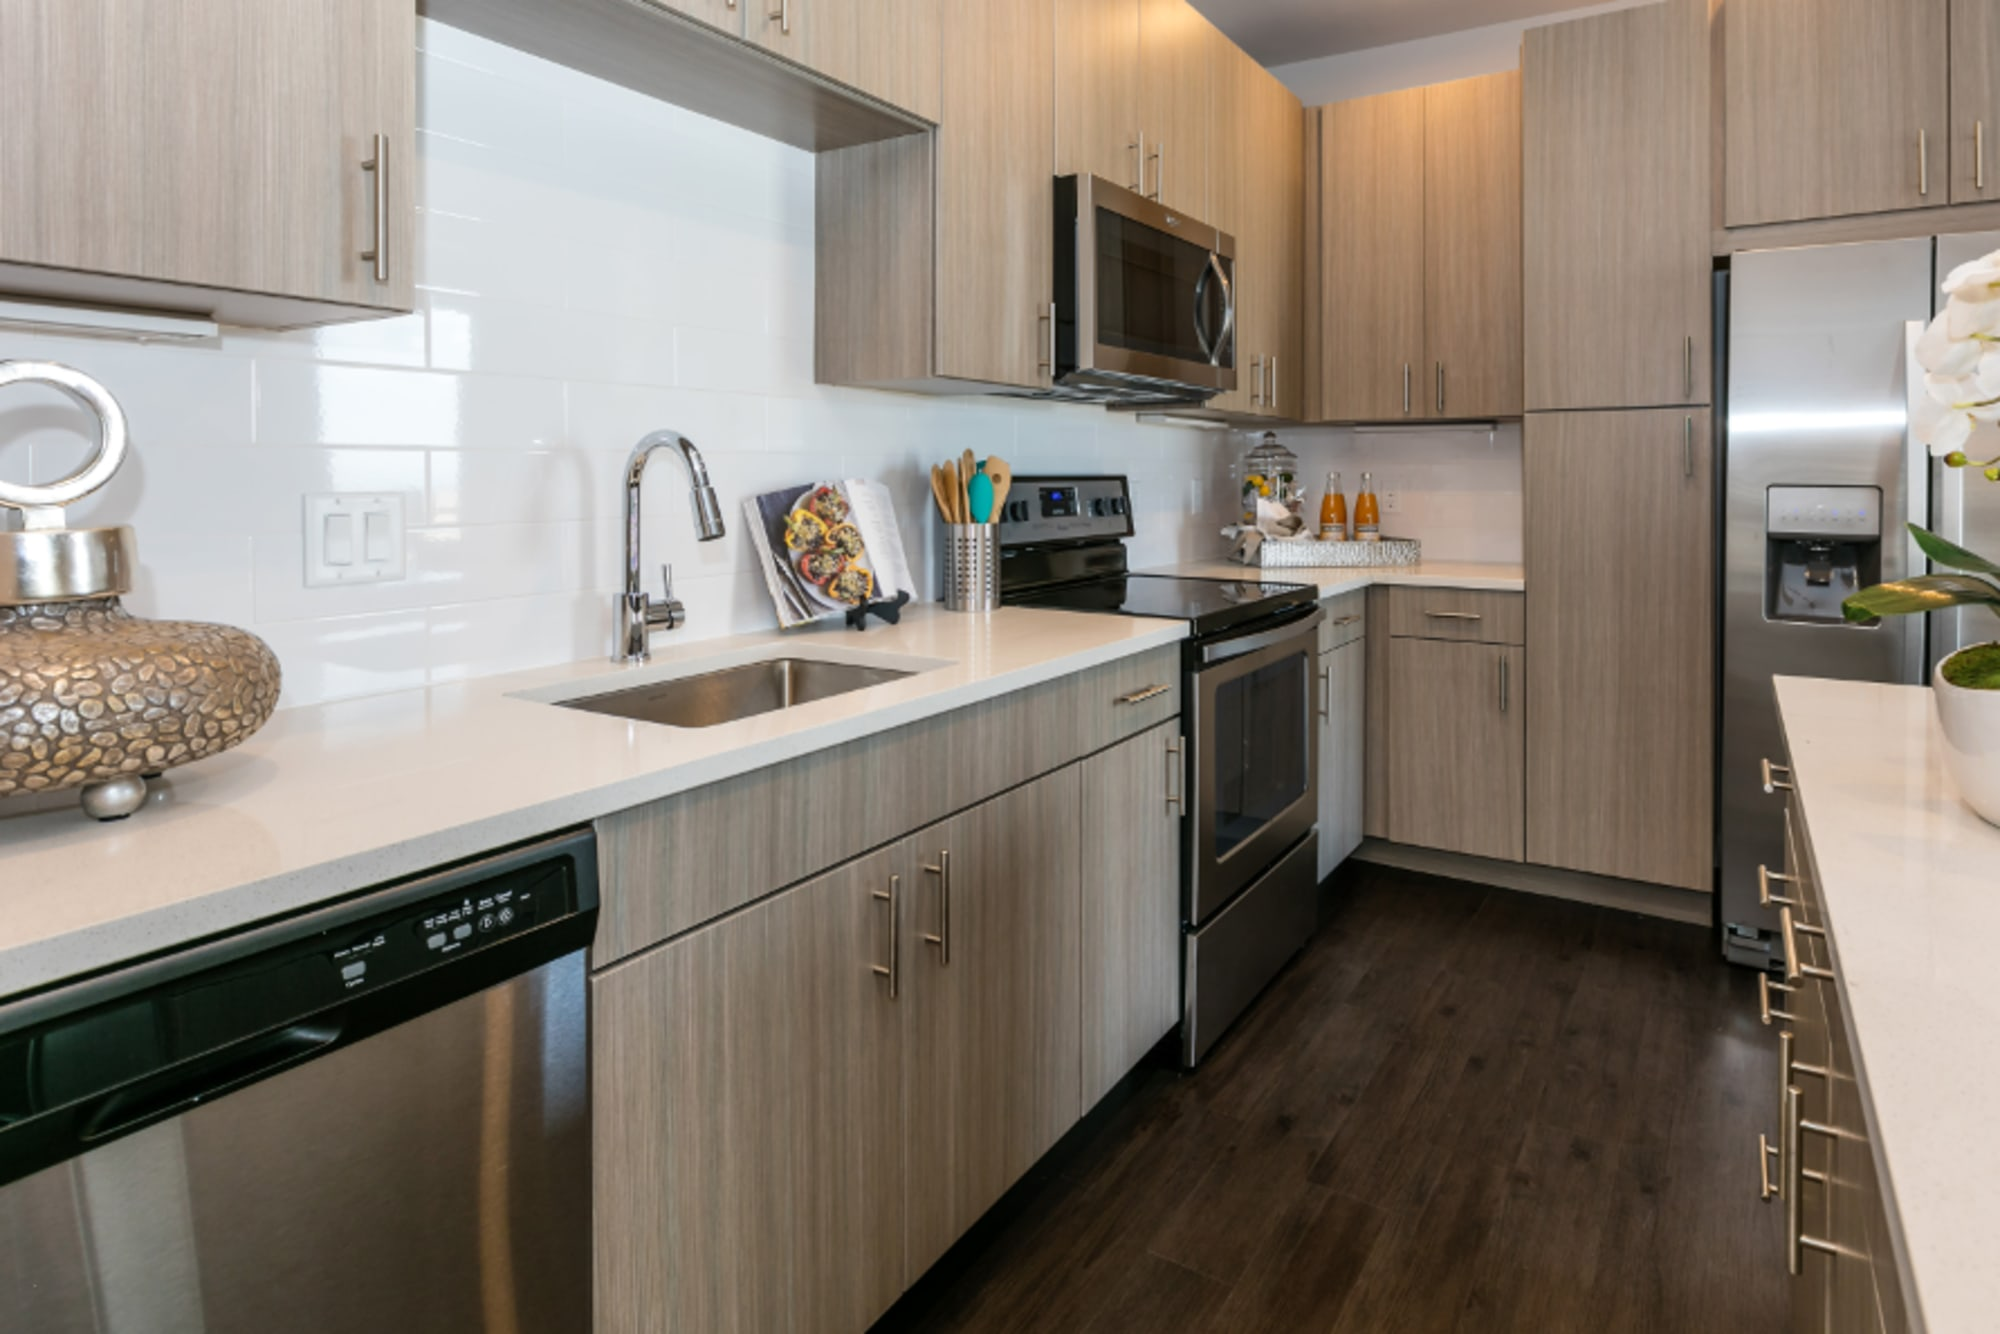 Tile backsplash and cream-colored cabinetry at Strata Apartments in Denver, Colorado